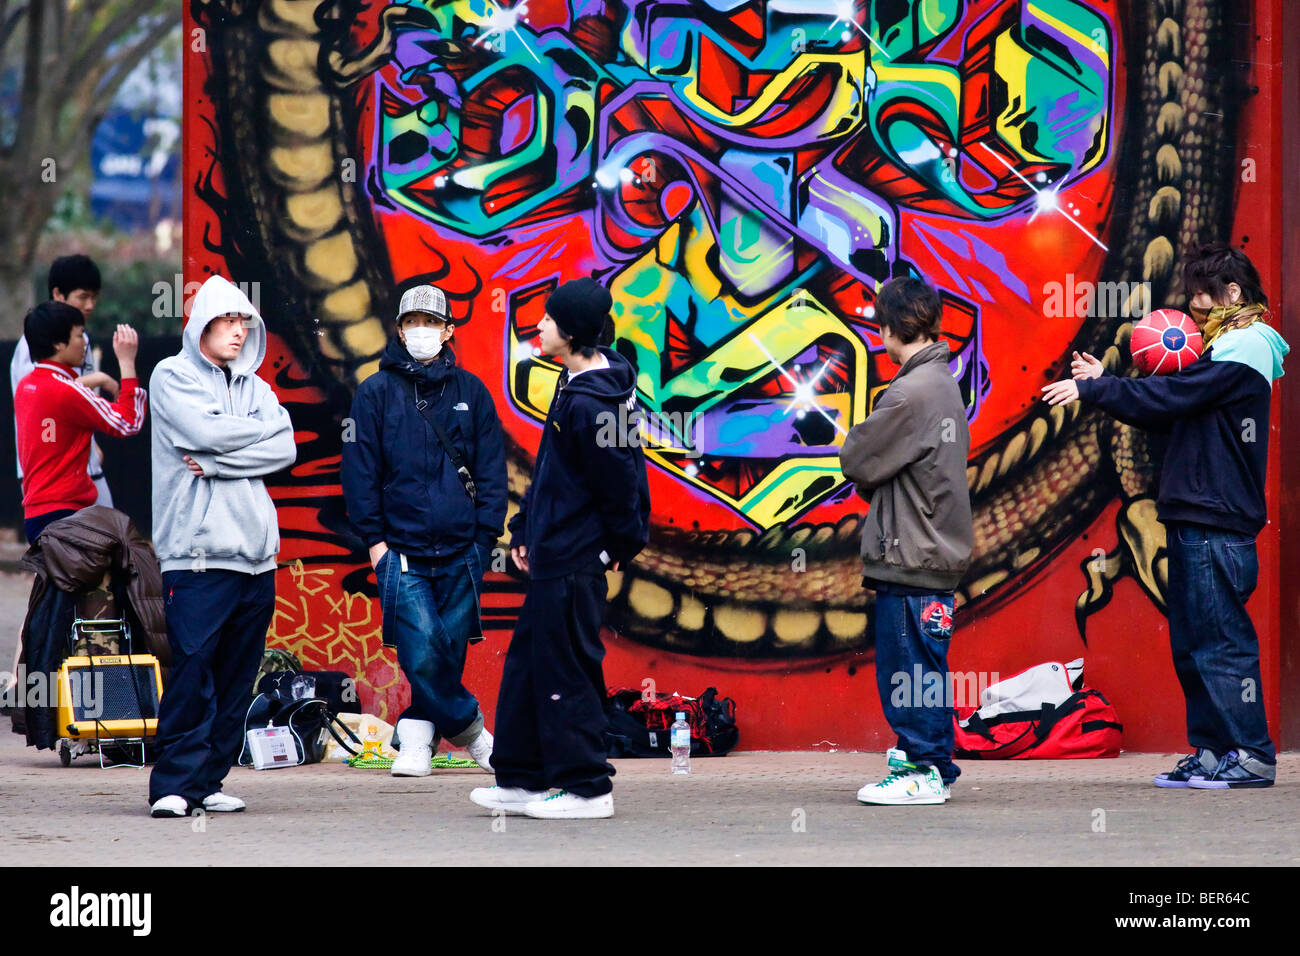 Graffiti wall tokyo -  Young People Hanging Out In Front Of Graffiti In Yoyogi Park Tokyo Japan